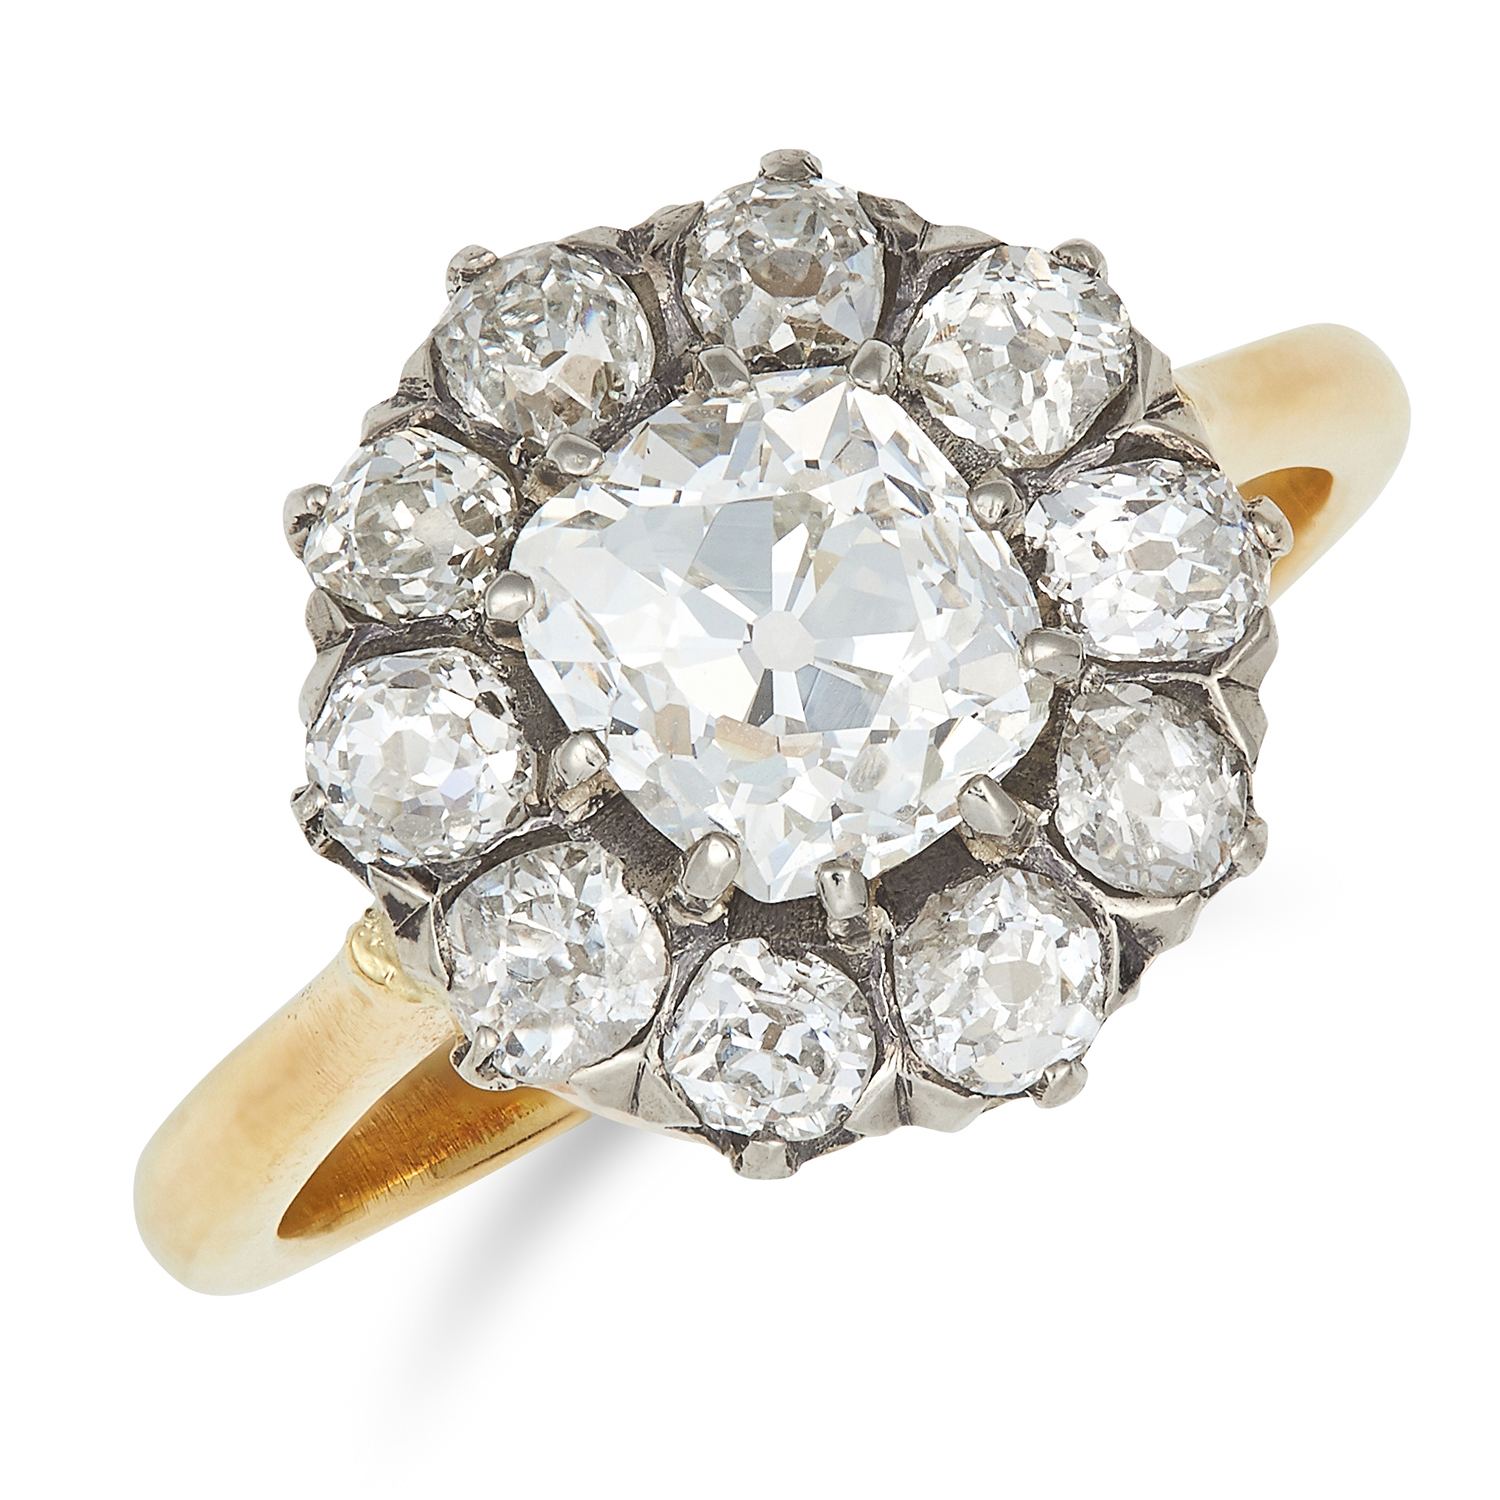 Los 9 - ANTIQUE 2.60 CARAT DIAMOND CLUSTER RING set with a central old cut diamond of 1.34 carats